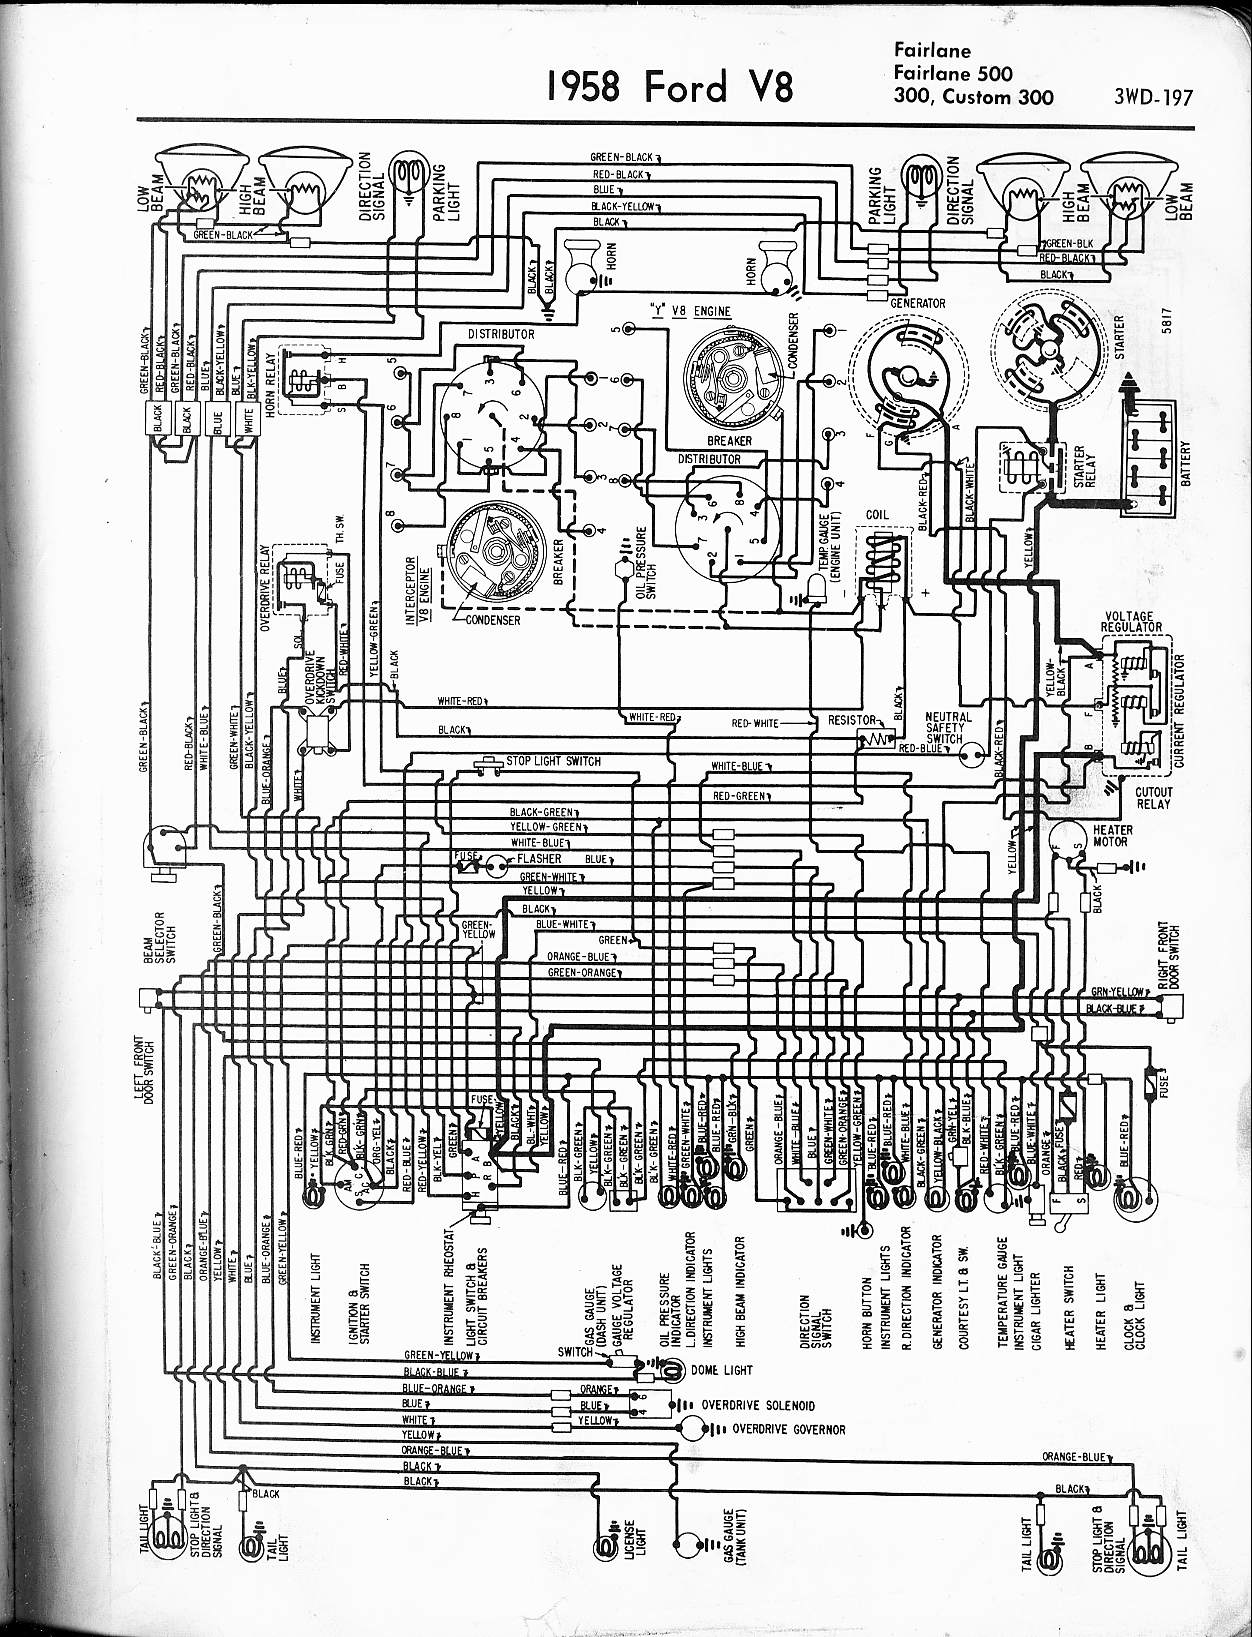 MWire5765 197 ford wiring diagrams online ford wiring diagrams instruction ford wiring diagrams at bayanpartner.co